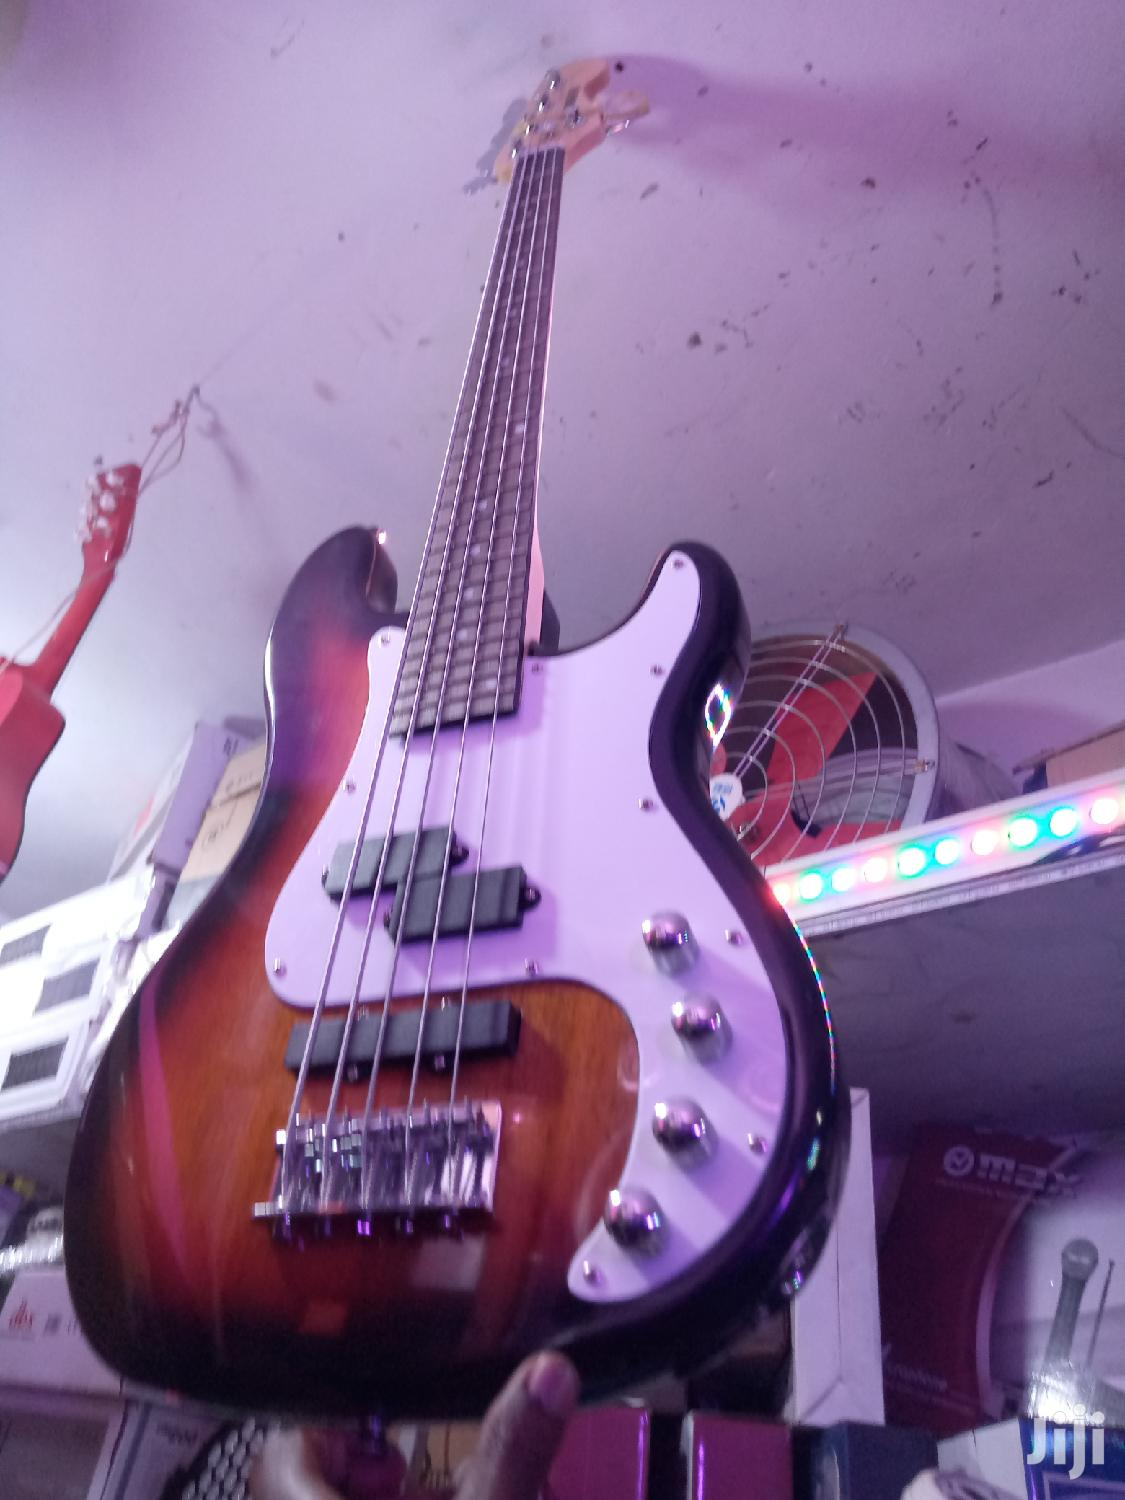 Yamaha Bass Guitar 5strings | Musical Instruments & Gear for sale in Kampala, Central Region, Uganda